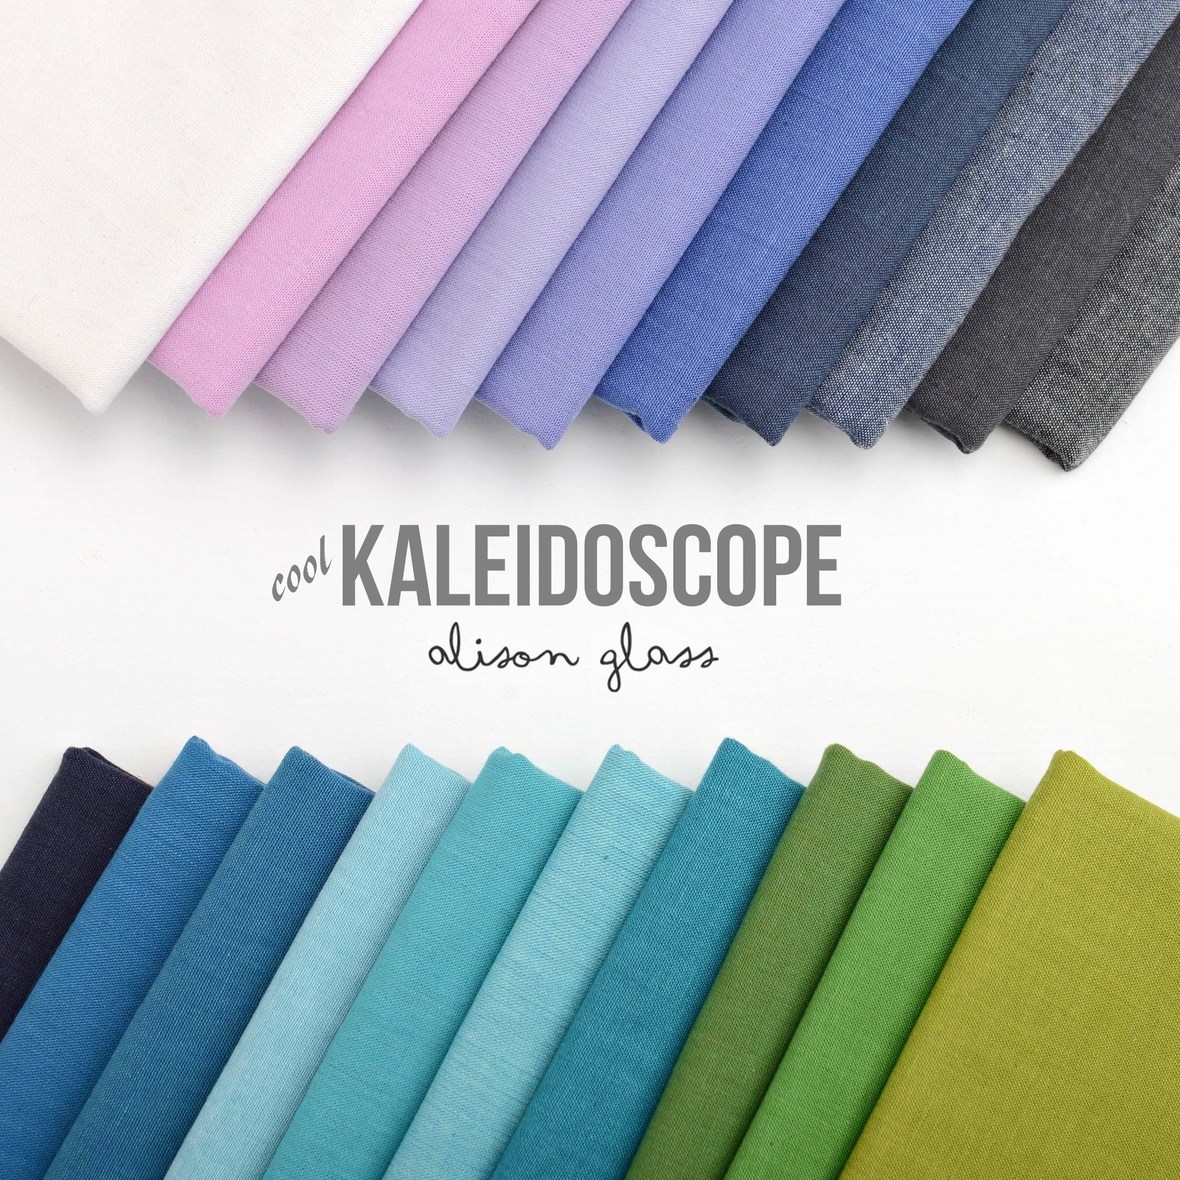 Kaleidoscope Cool Fabric Poster Alison Glass at Hawthorne Threads